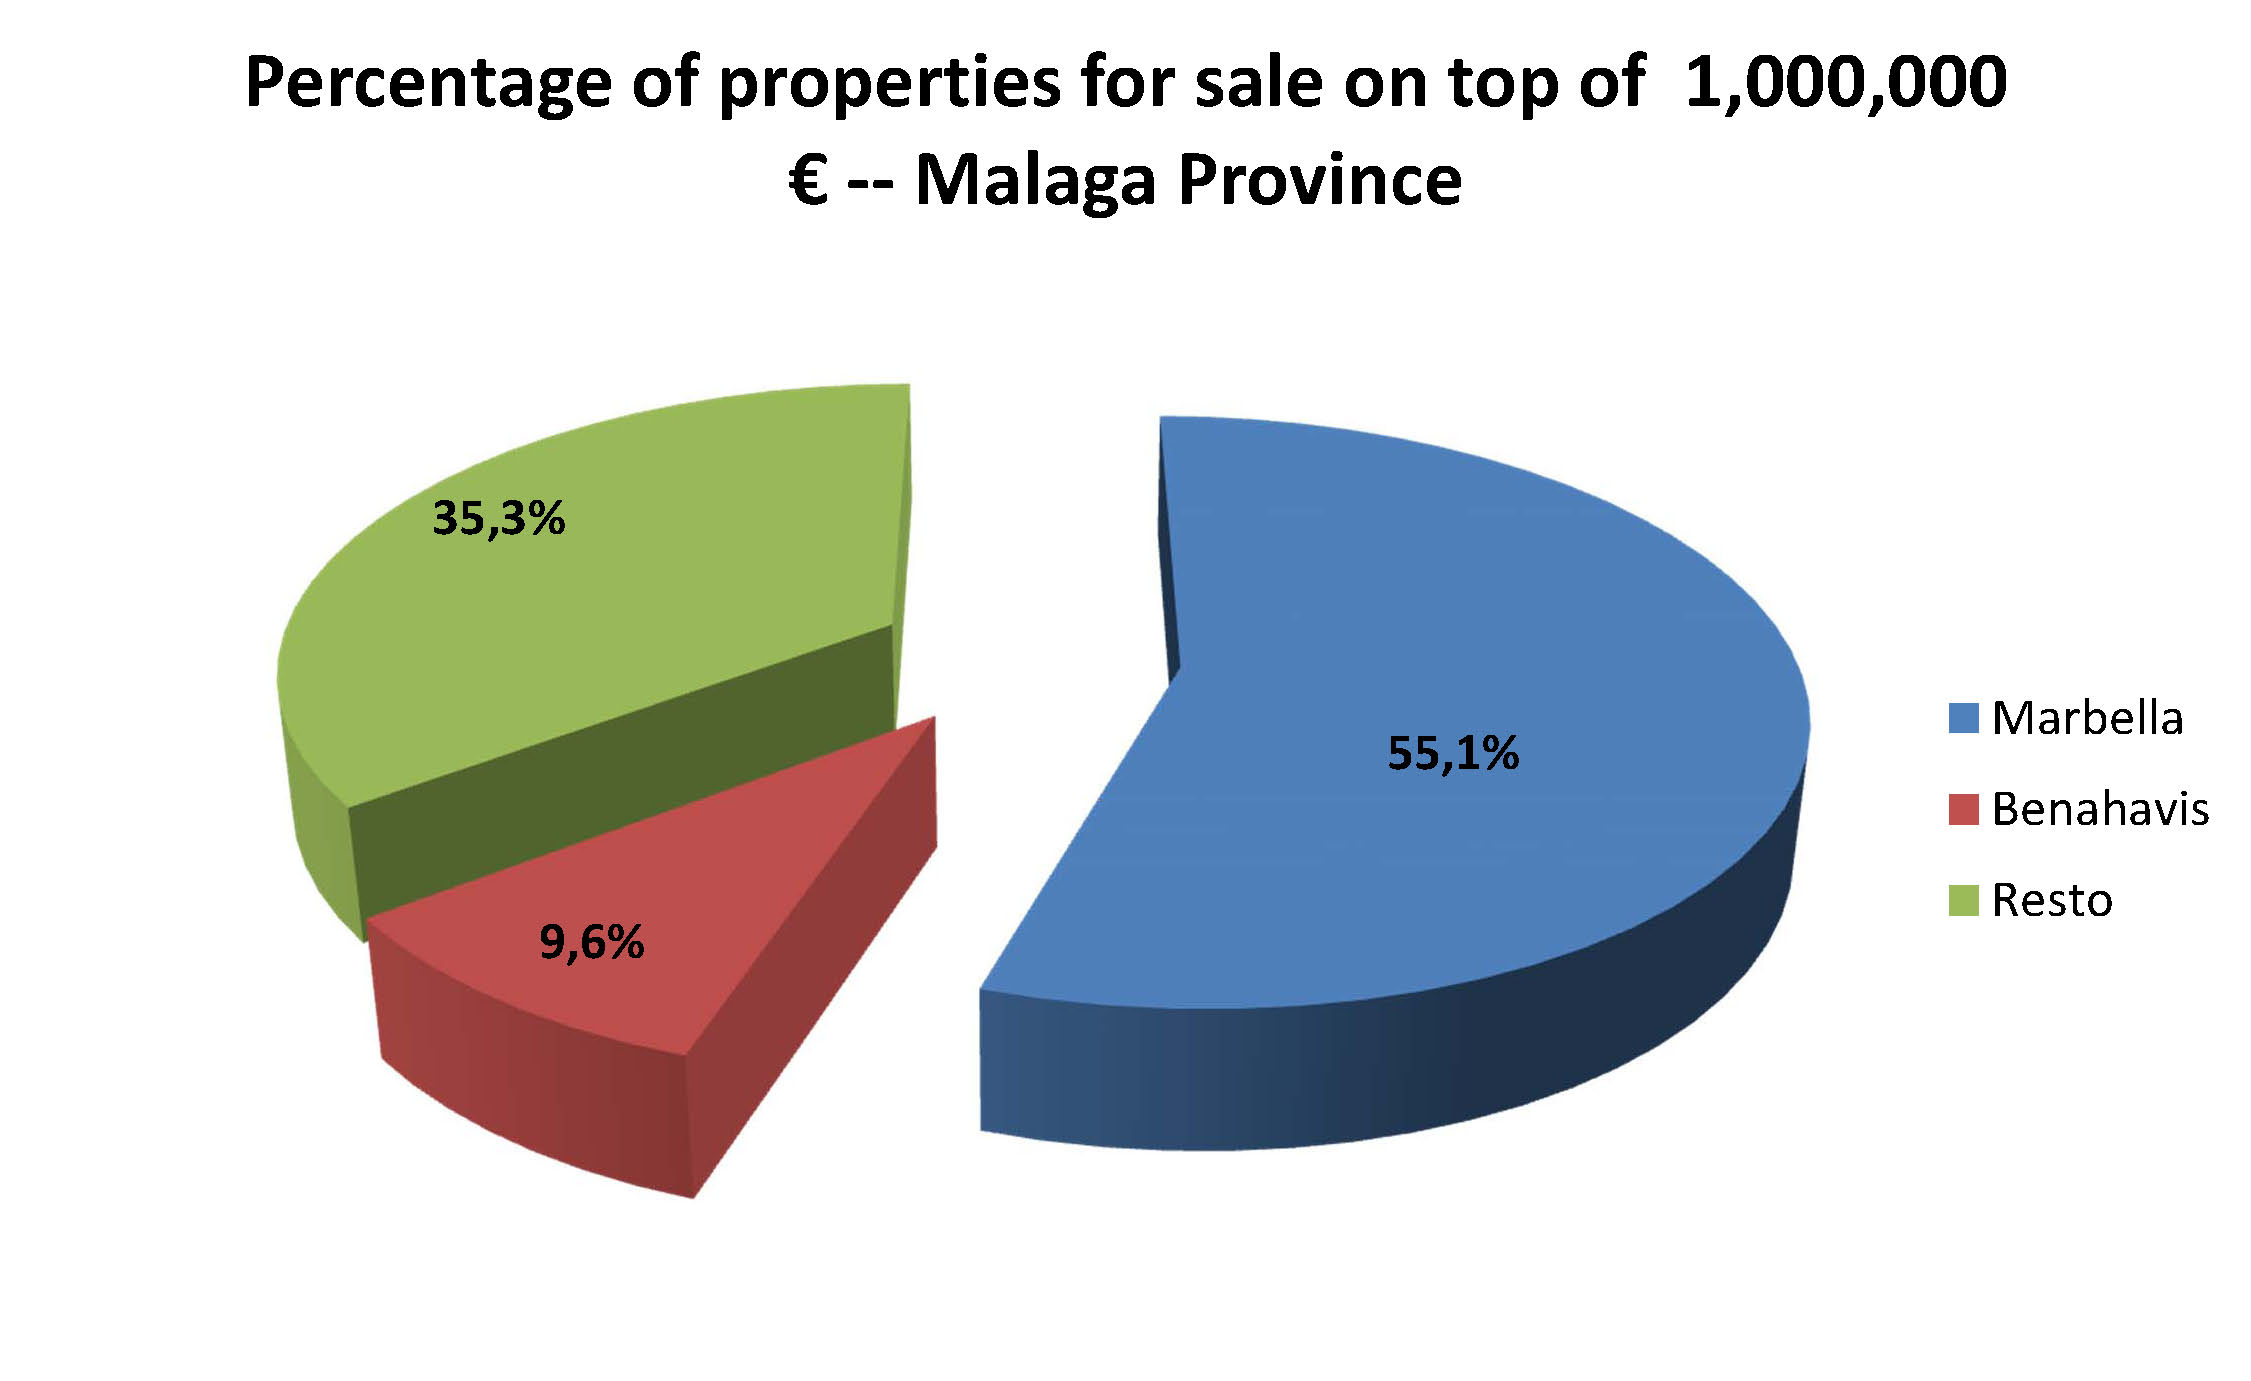 properties-for-sale-malaga-province-percentage-1000000